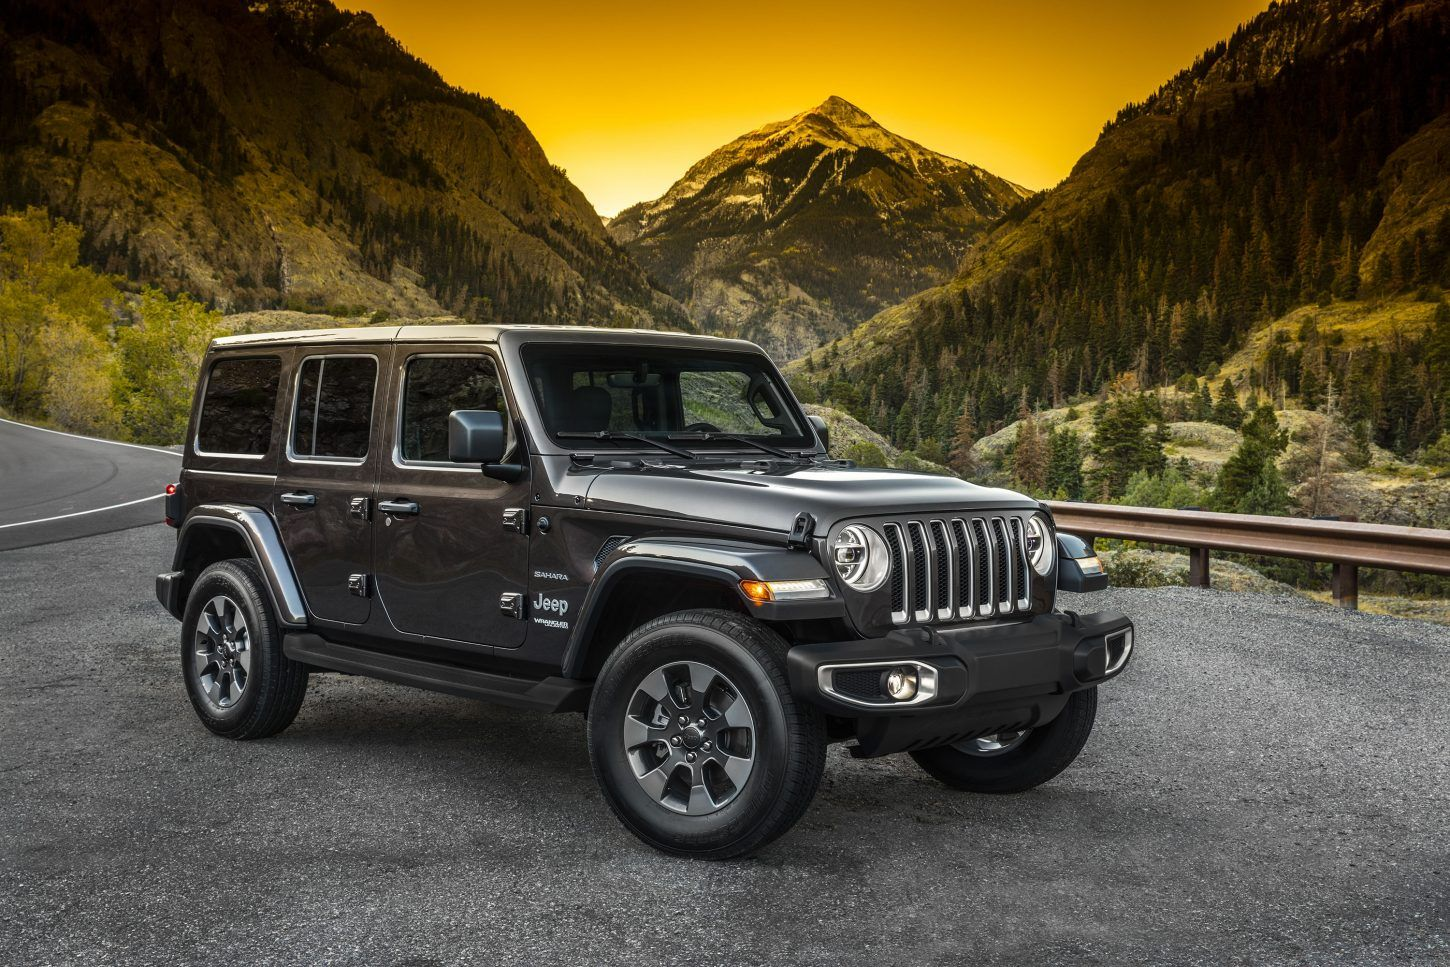 2020 Jeep Wrangler Review, Styling, Specs, Price